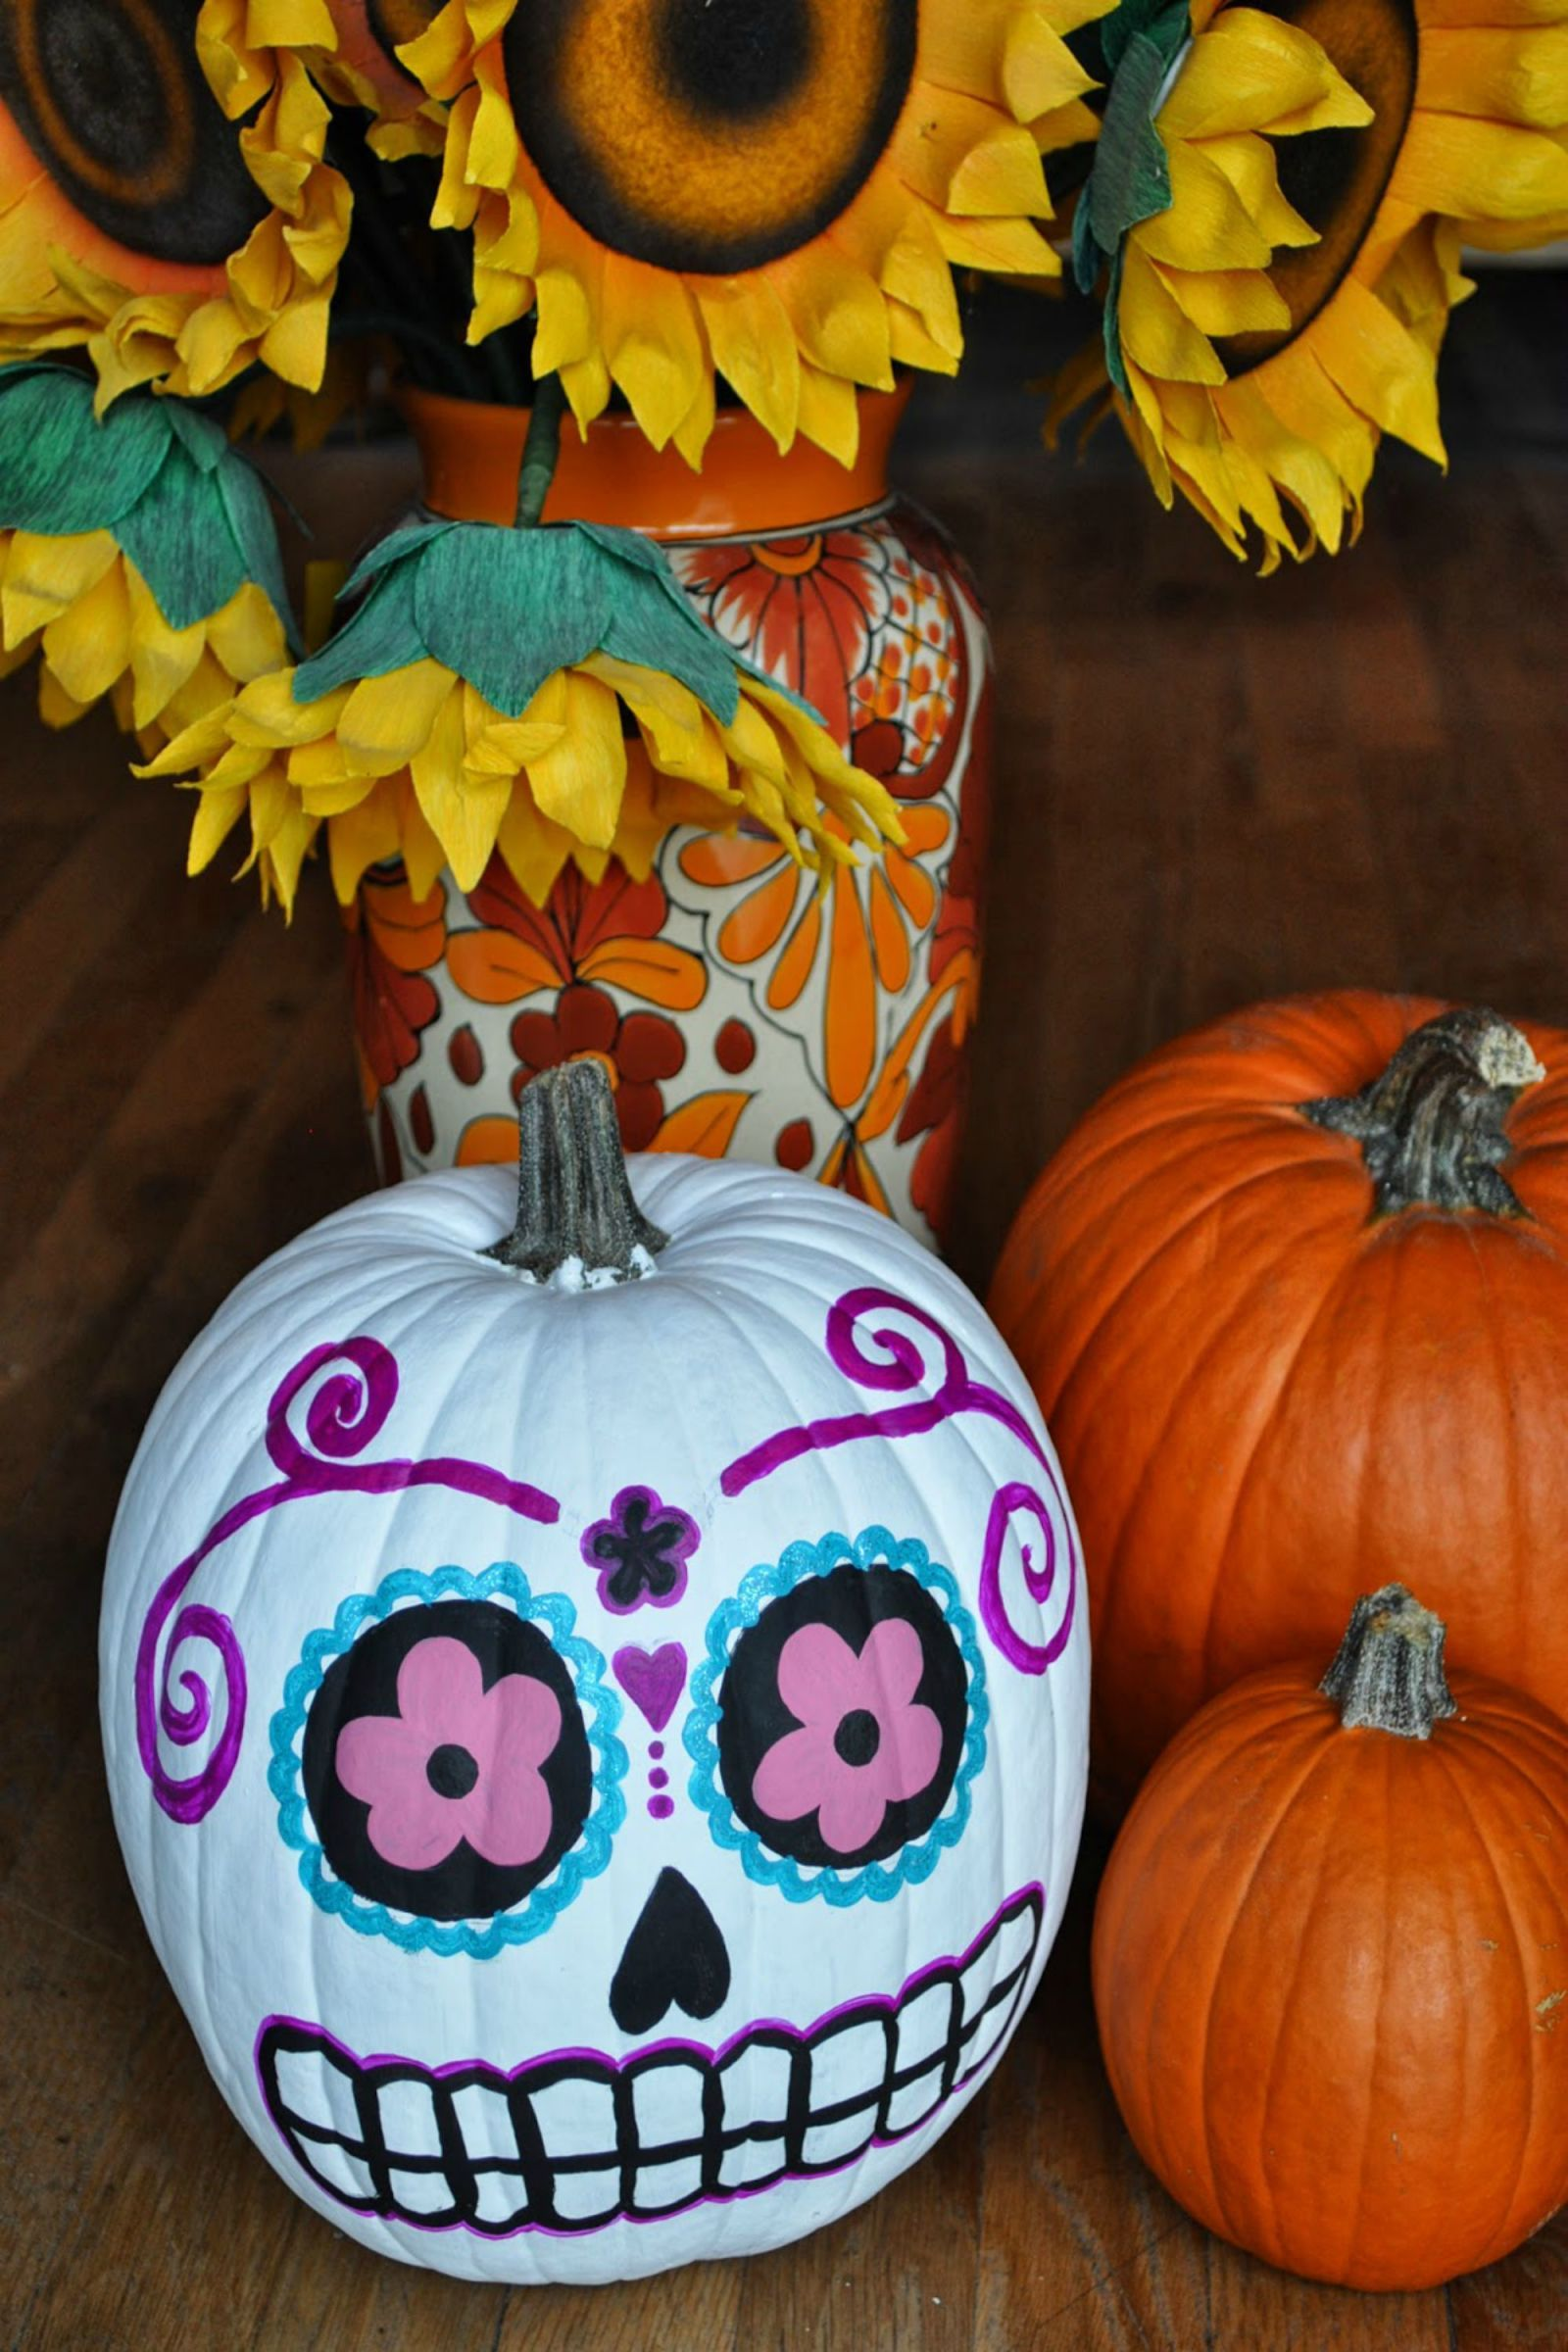 The 30 Best Pumpkin Decorating Ideas Youu0027ve Ever Seen : sugar skull decoration ideas - www.pureclipart.com